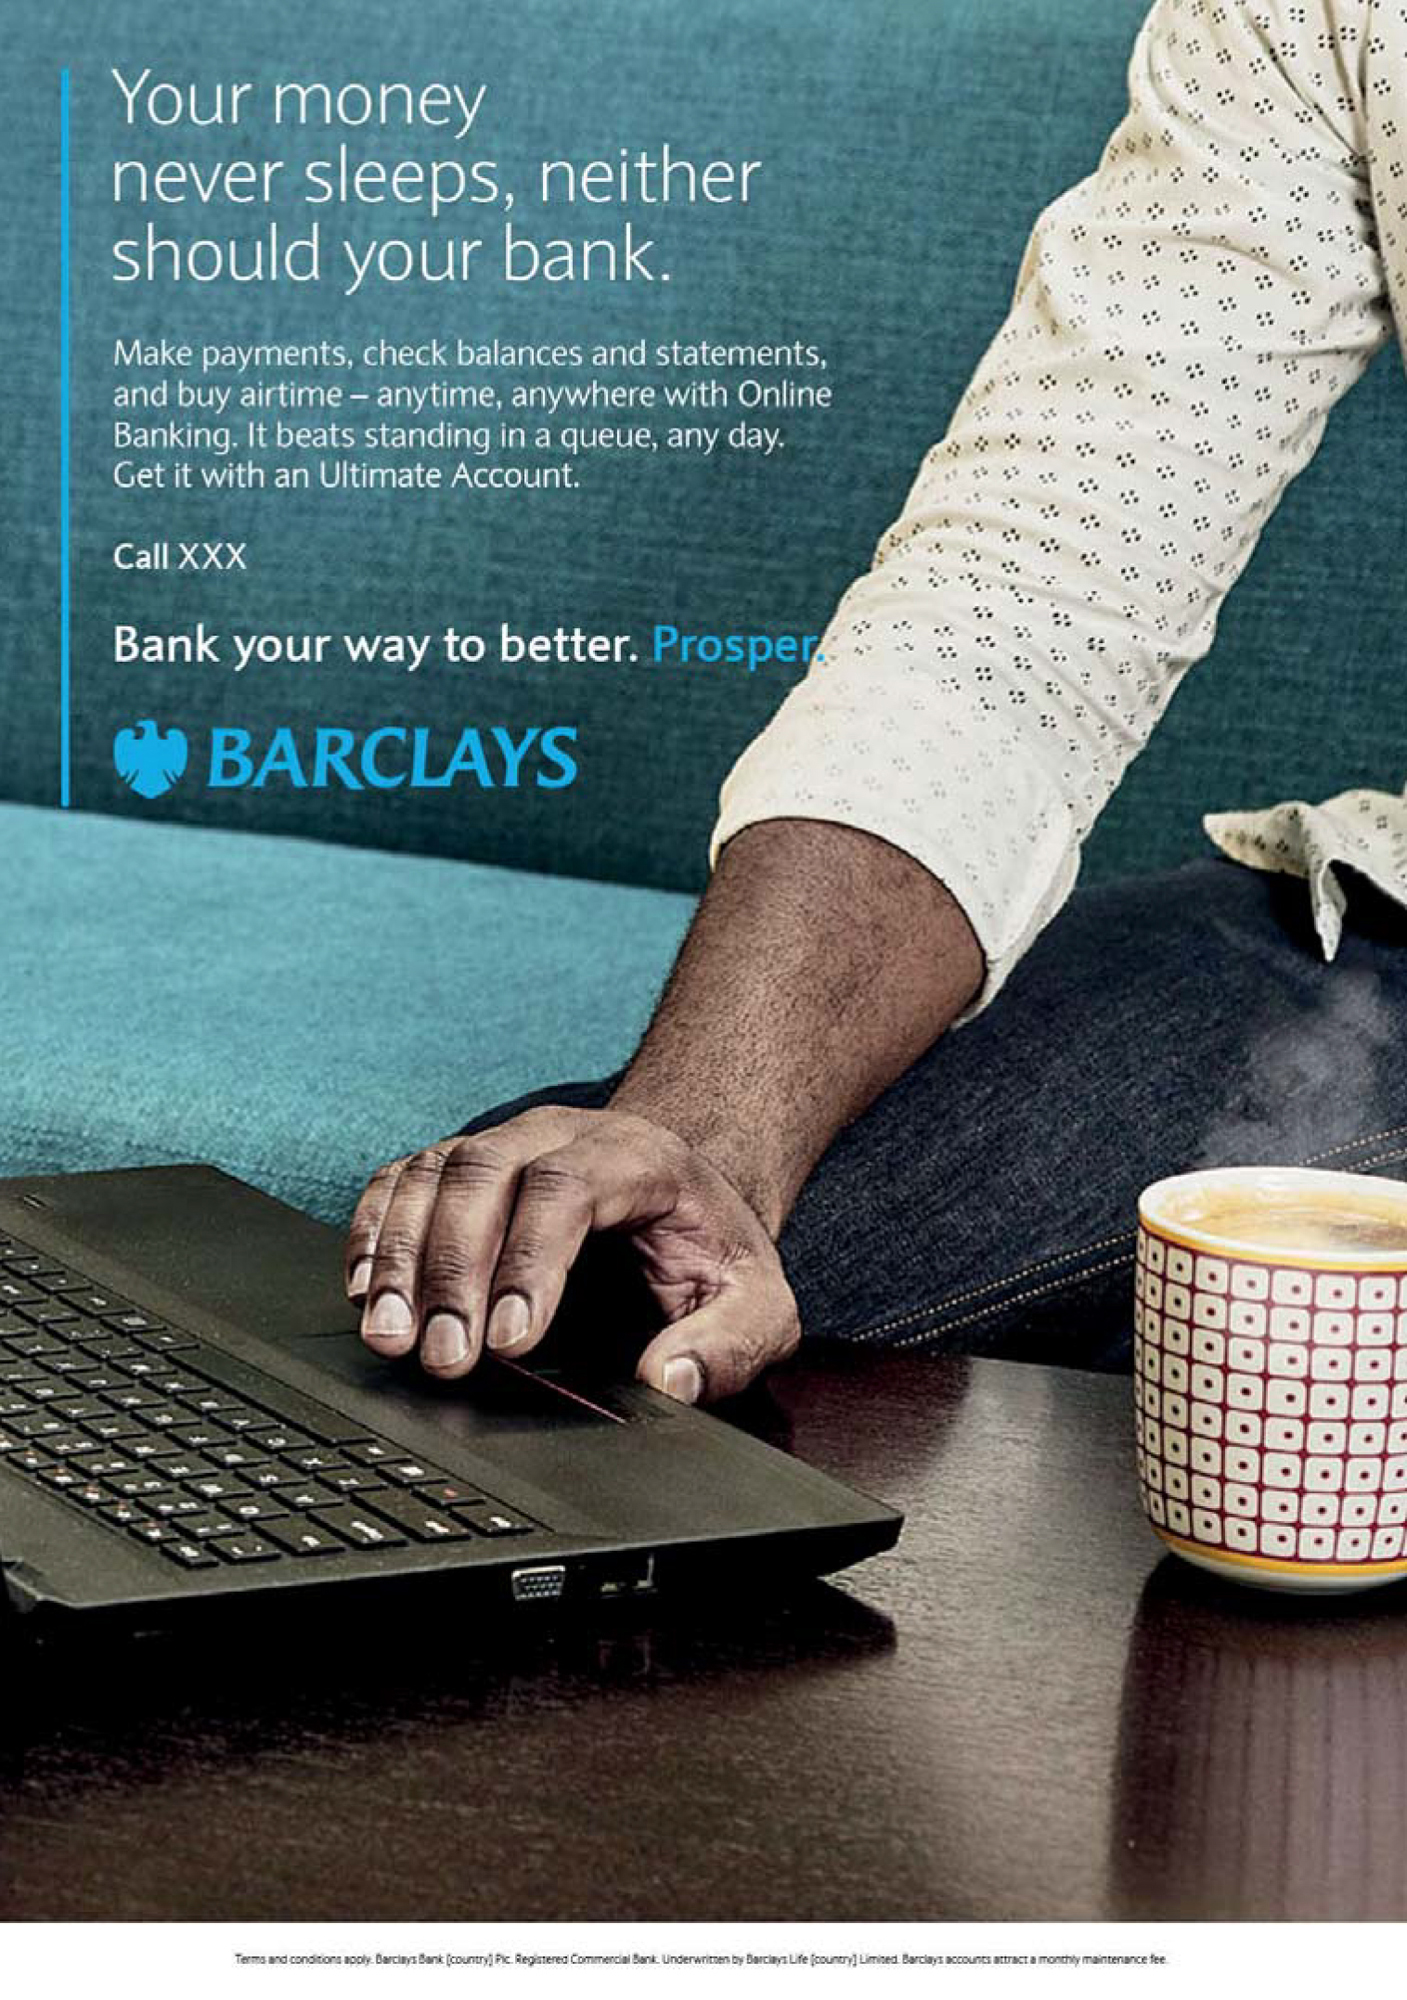 Barclays Personal Banking Campaign Toolkit 26 APRIL-87.jpg